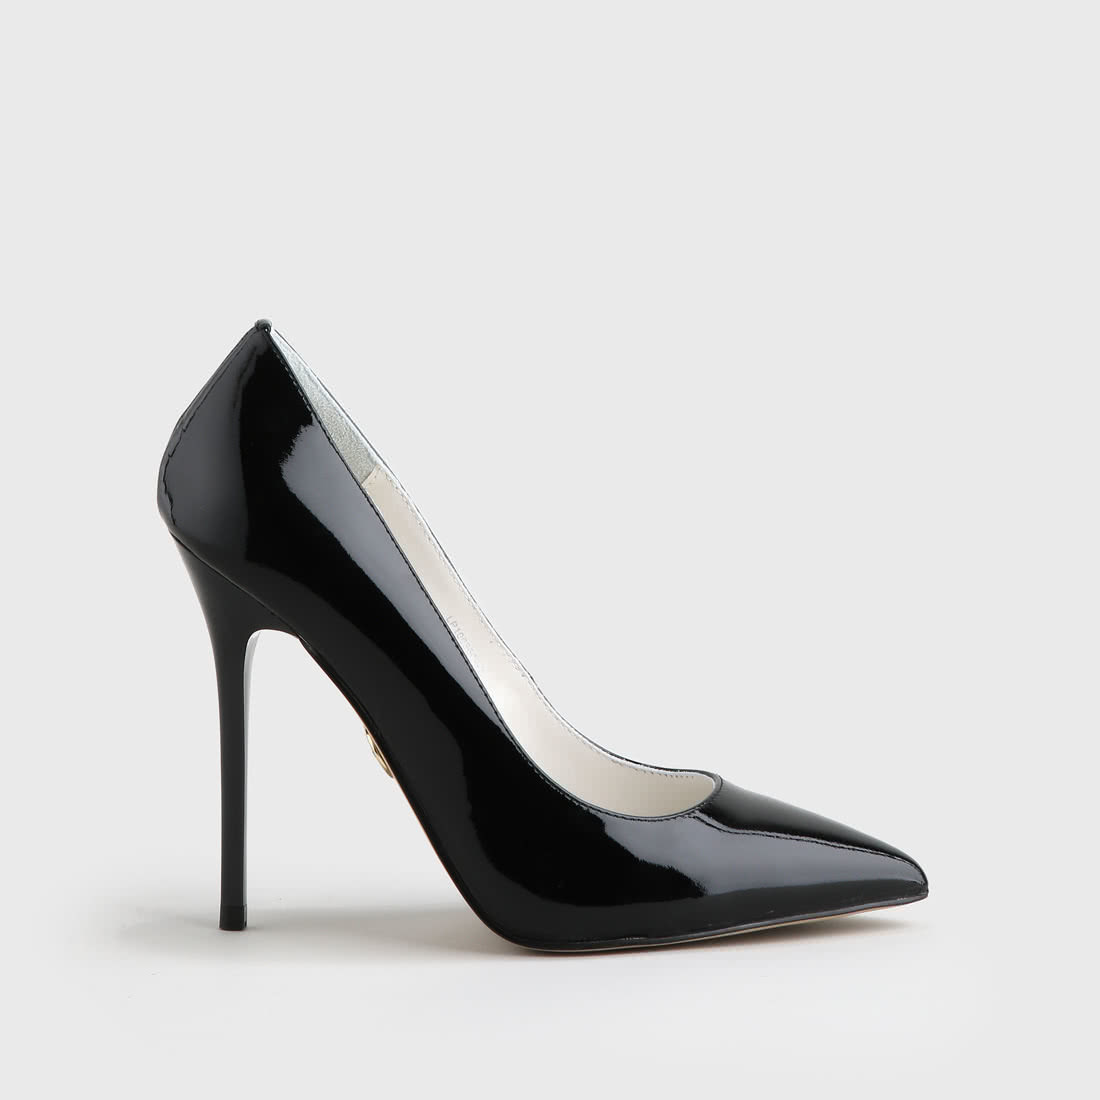 8dba47da0ef Buffalo pointed pumps patent leather 11 cm black buy online in ...